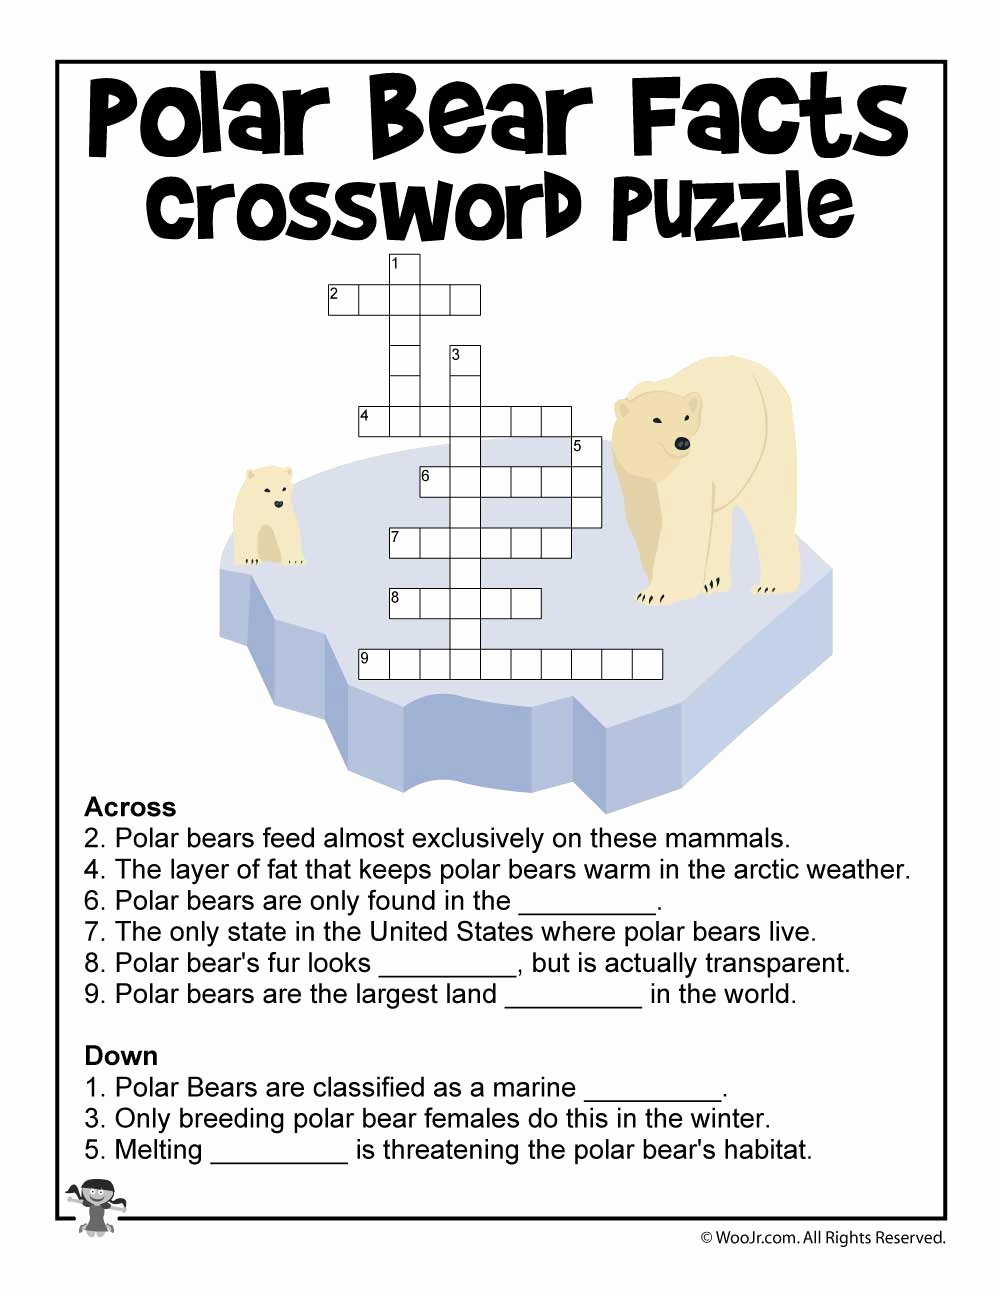 Polar Bear Worksheets for Preschoolers Inspirational Polar Bear Day Crossword Puzzle Worksheet